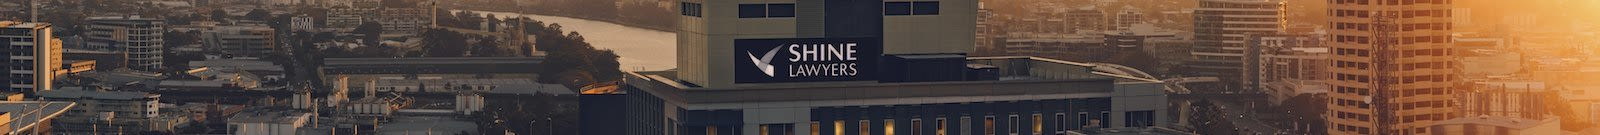 Shine Lawyers | Food poisoning law | Shine Lawyers